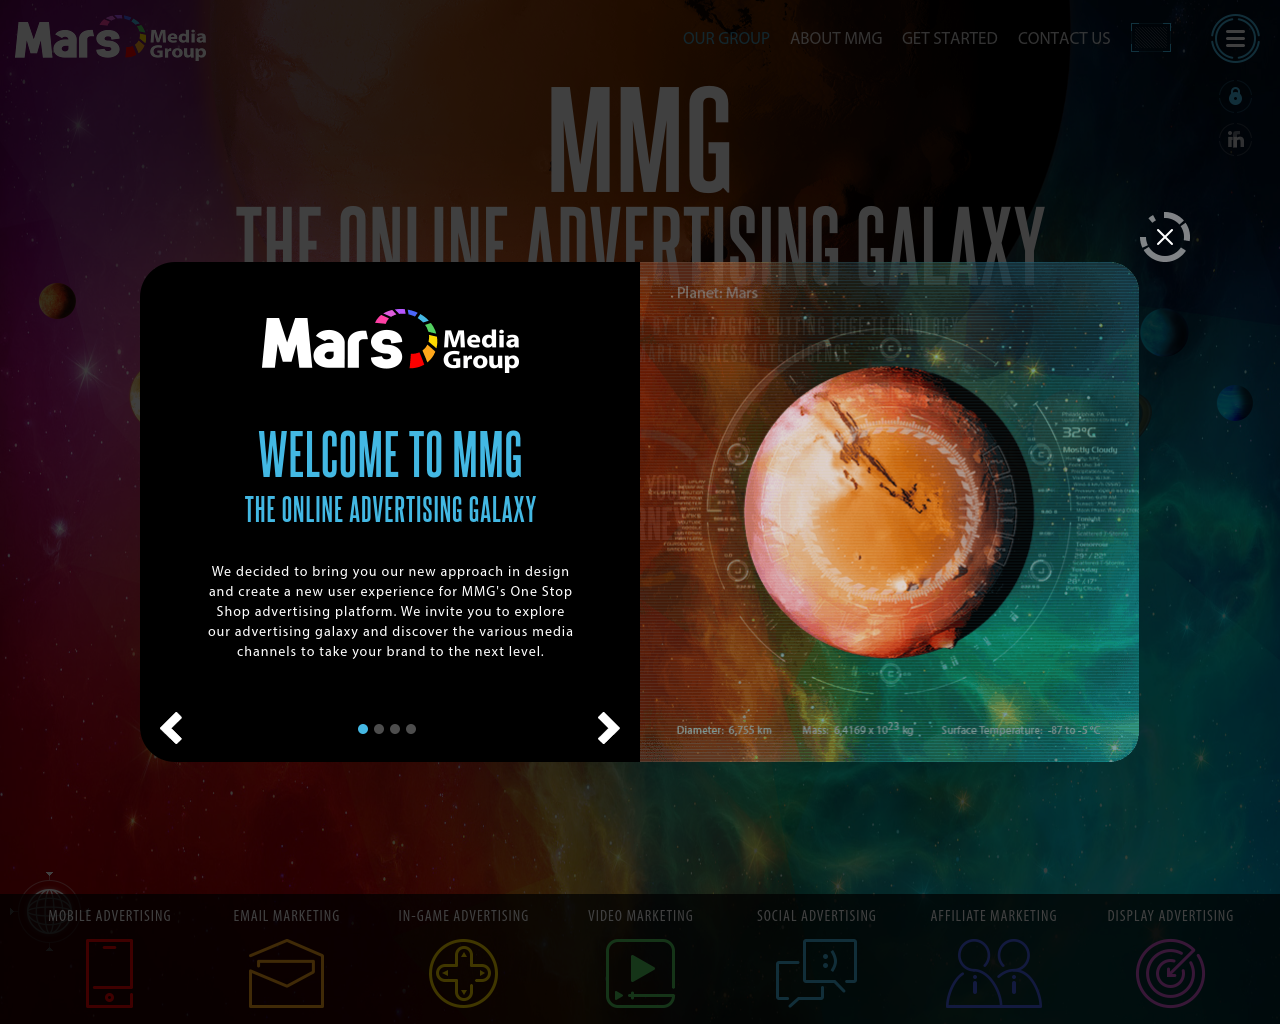 MMG---Mars-Media-Group-Advertising-Reviews-Pricing